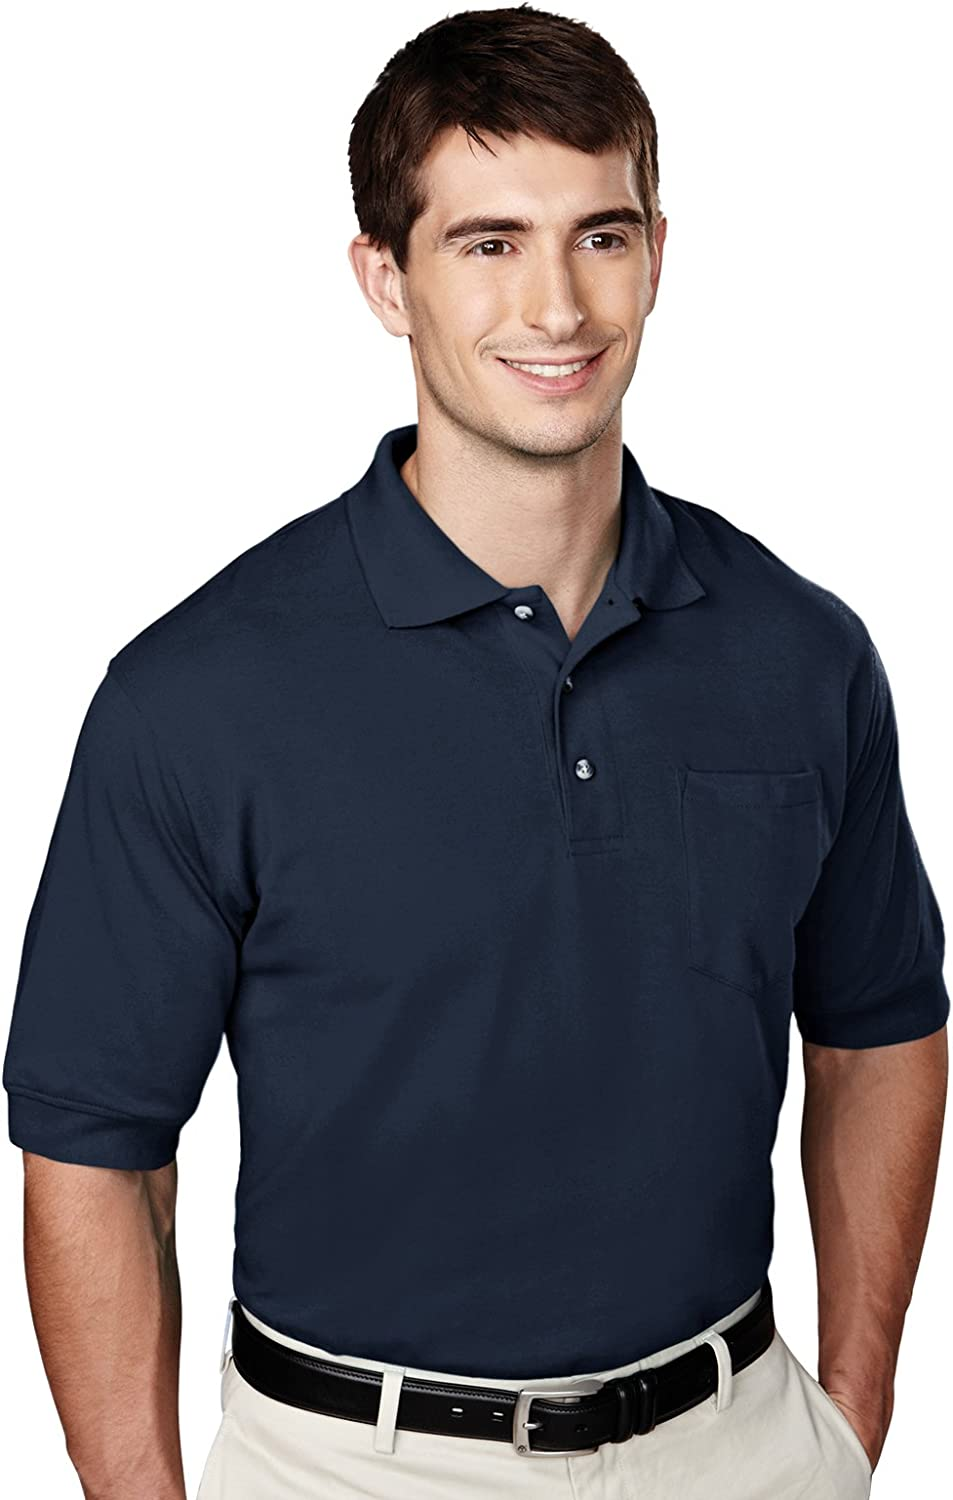 Big & Tall Polo Shirts with Pockets, Hard to find Sizes 5X 6X 7X 8 X 10 in 7 Colors